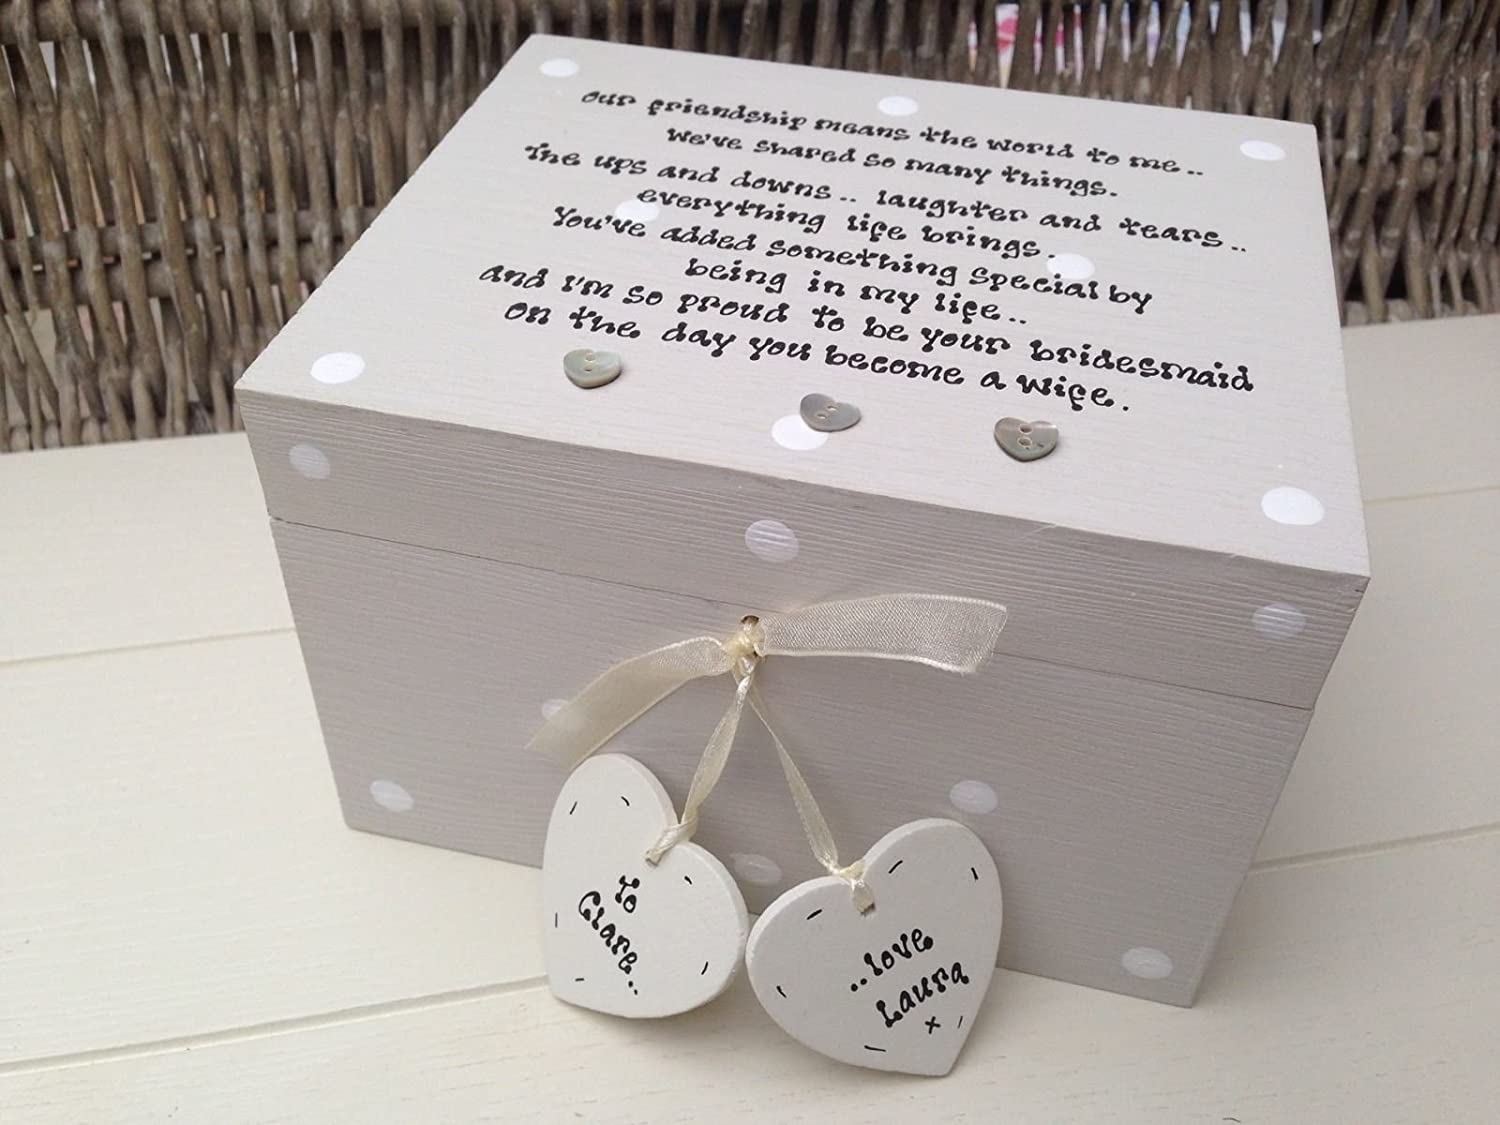 Shabby Chic Style Personalised Gift For Bride From Bridesmaid